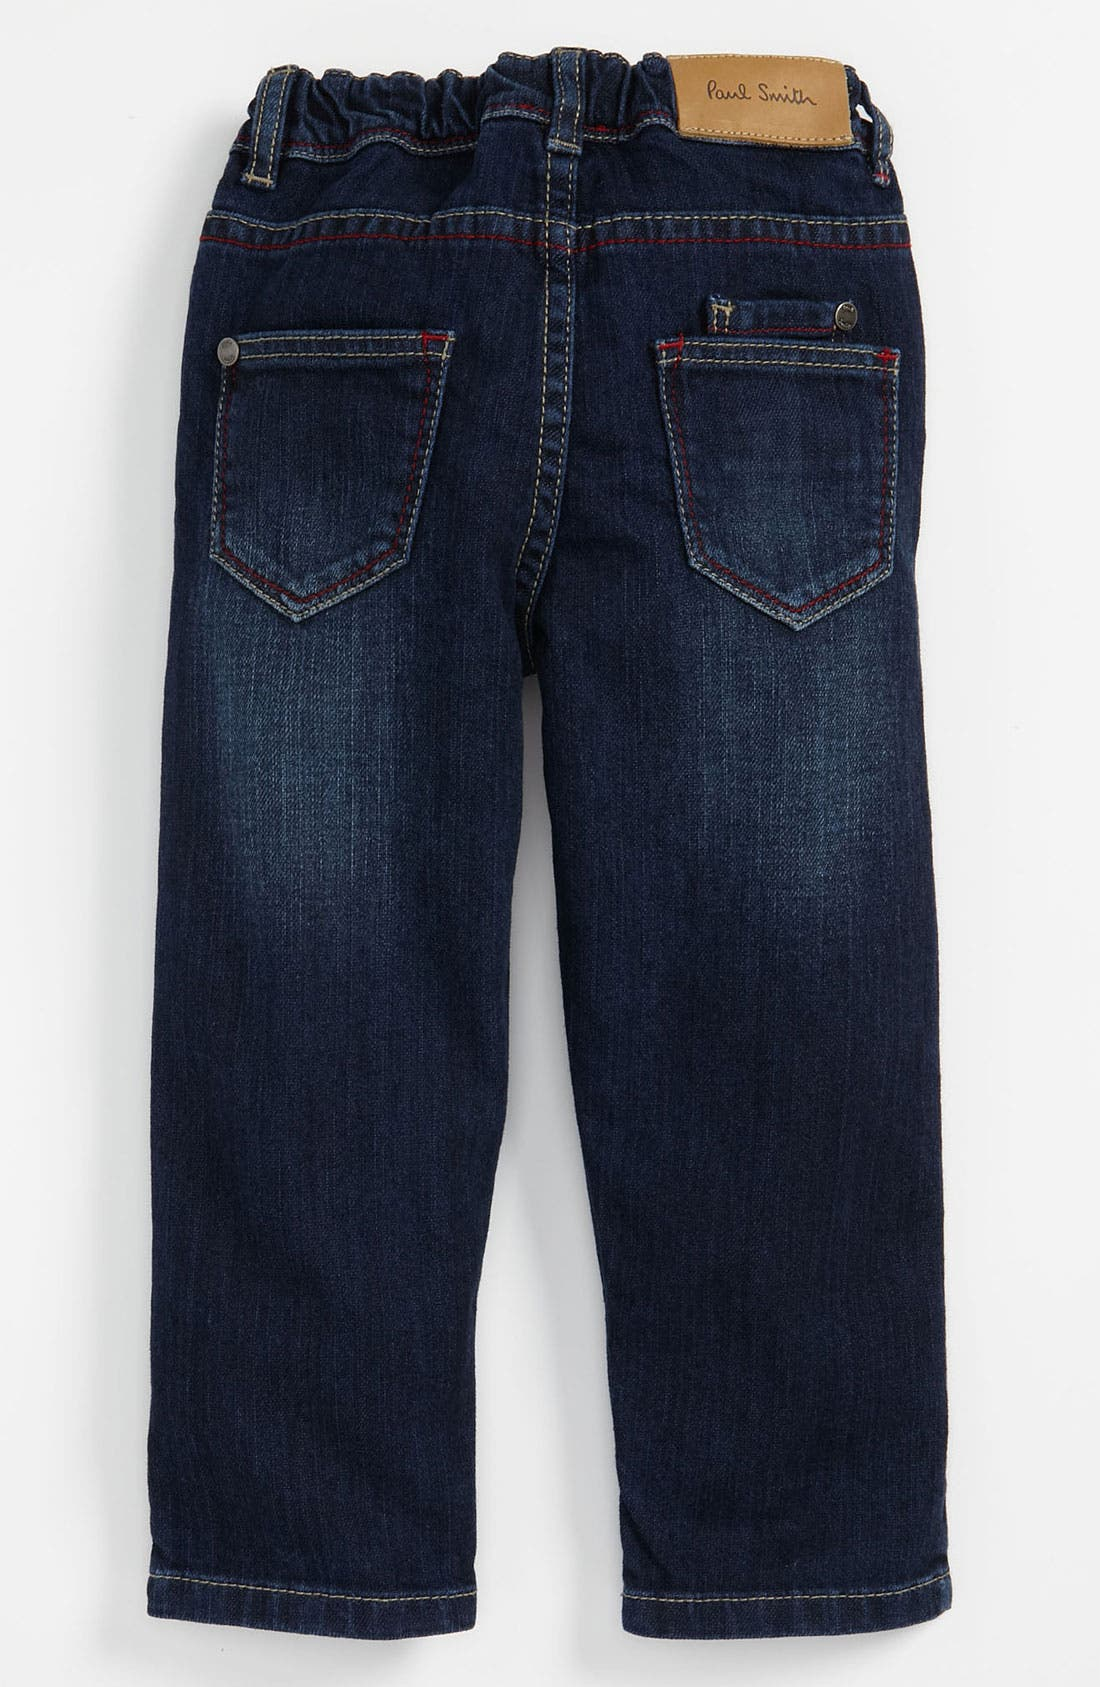 Main Image - Paul Smith Junior 'Colby' Jeans (Infant)